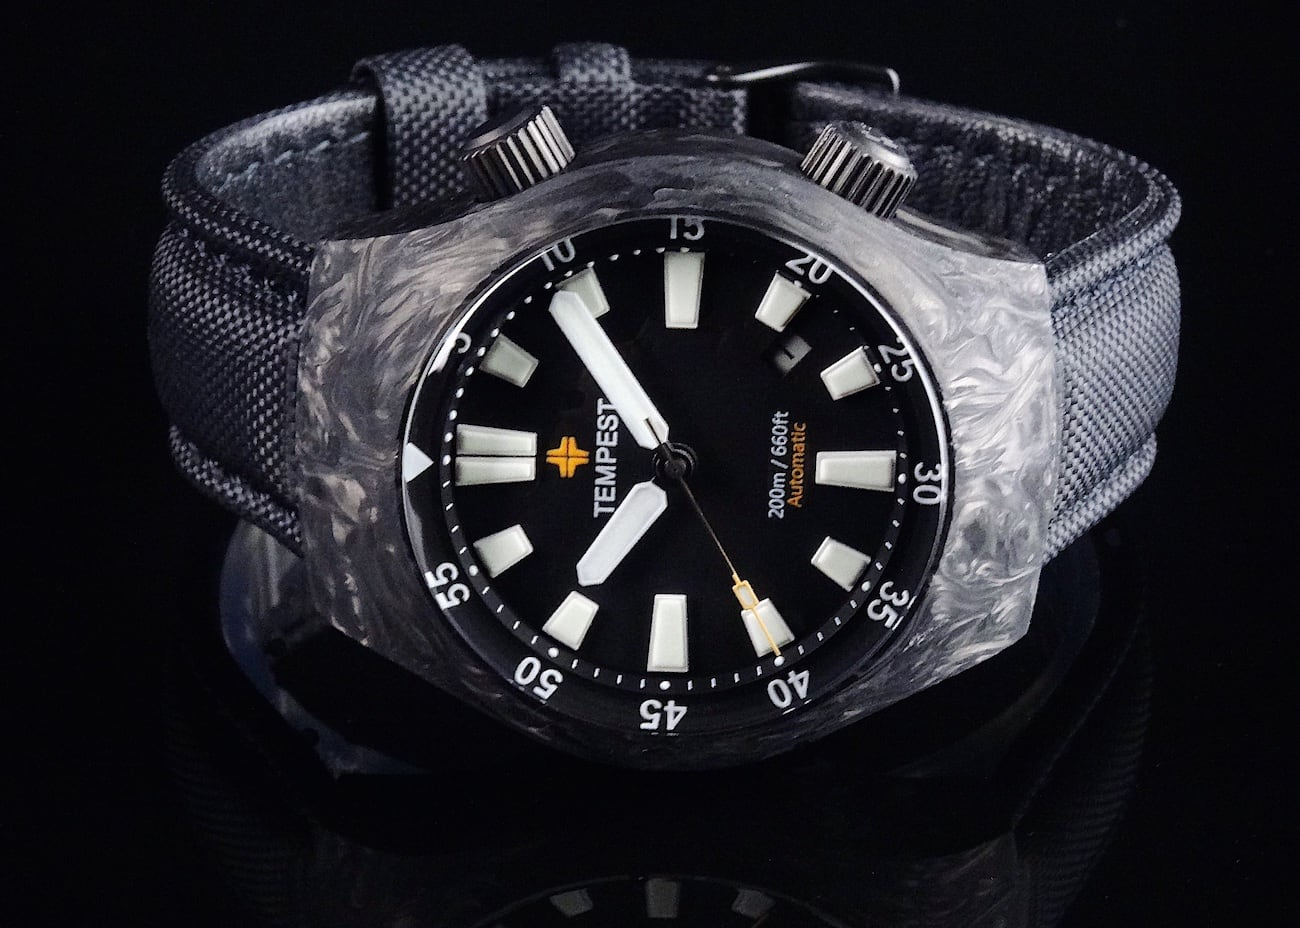 Tempest Carbon 2 Forged Carbon Watch